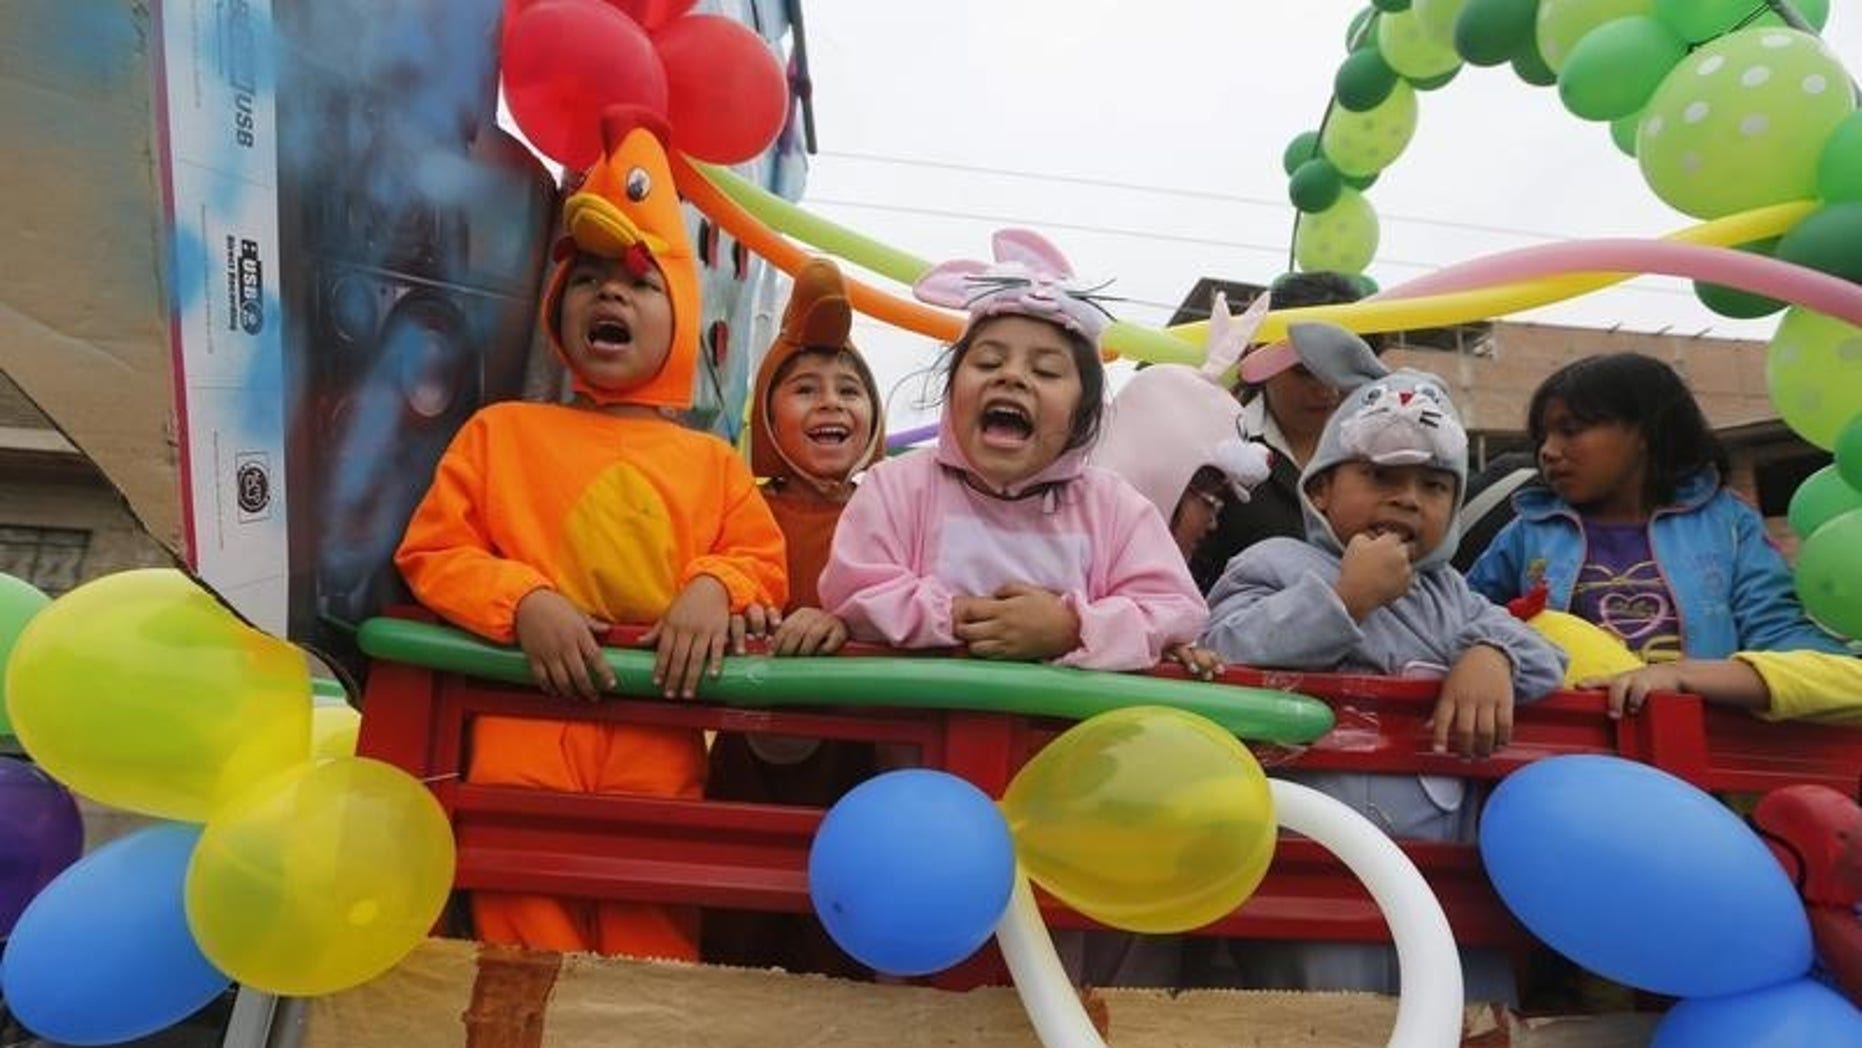 Preschool children dressed as animals participate in a parade ahead of preschool education celebration day, at the district of Villa El Salvador on the outskirts of Lima, May 23, 2014.  REUTERS/Mariana Bazo